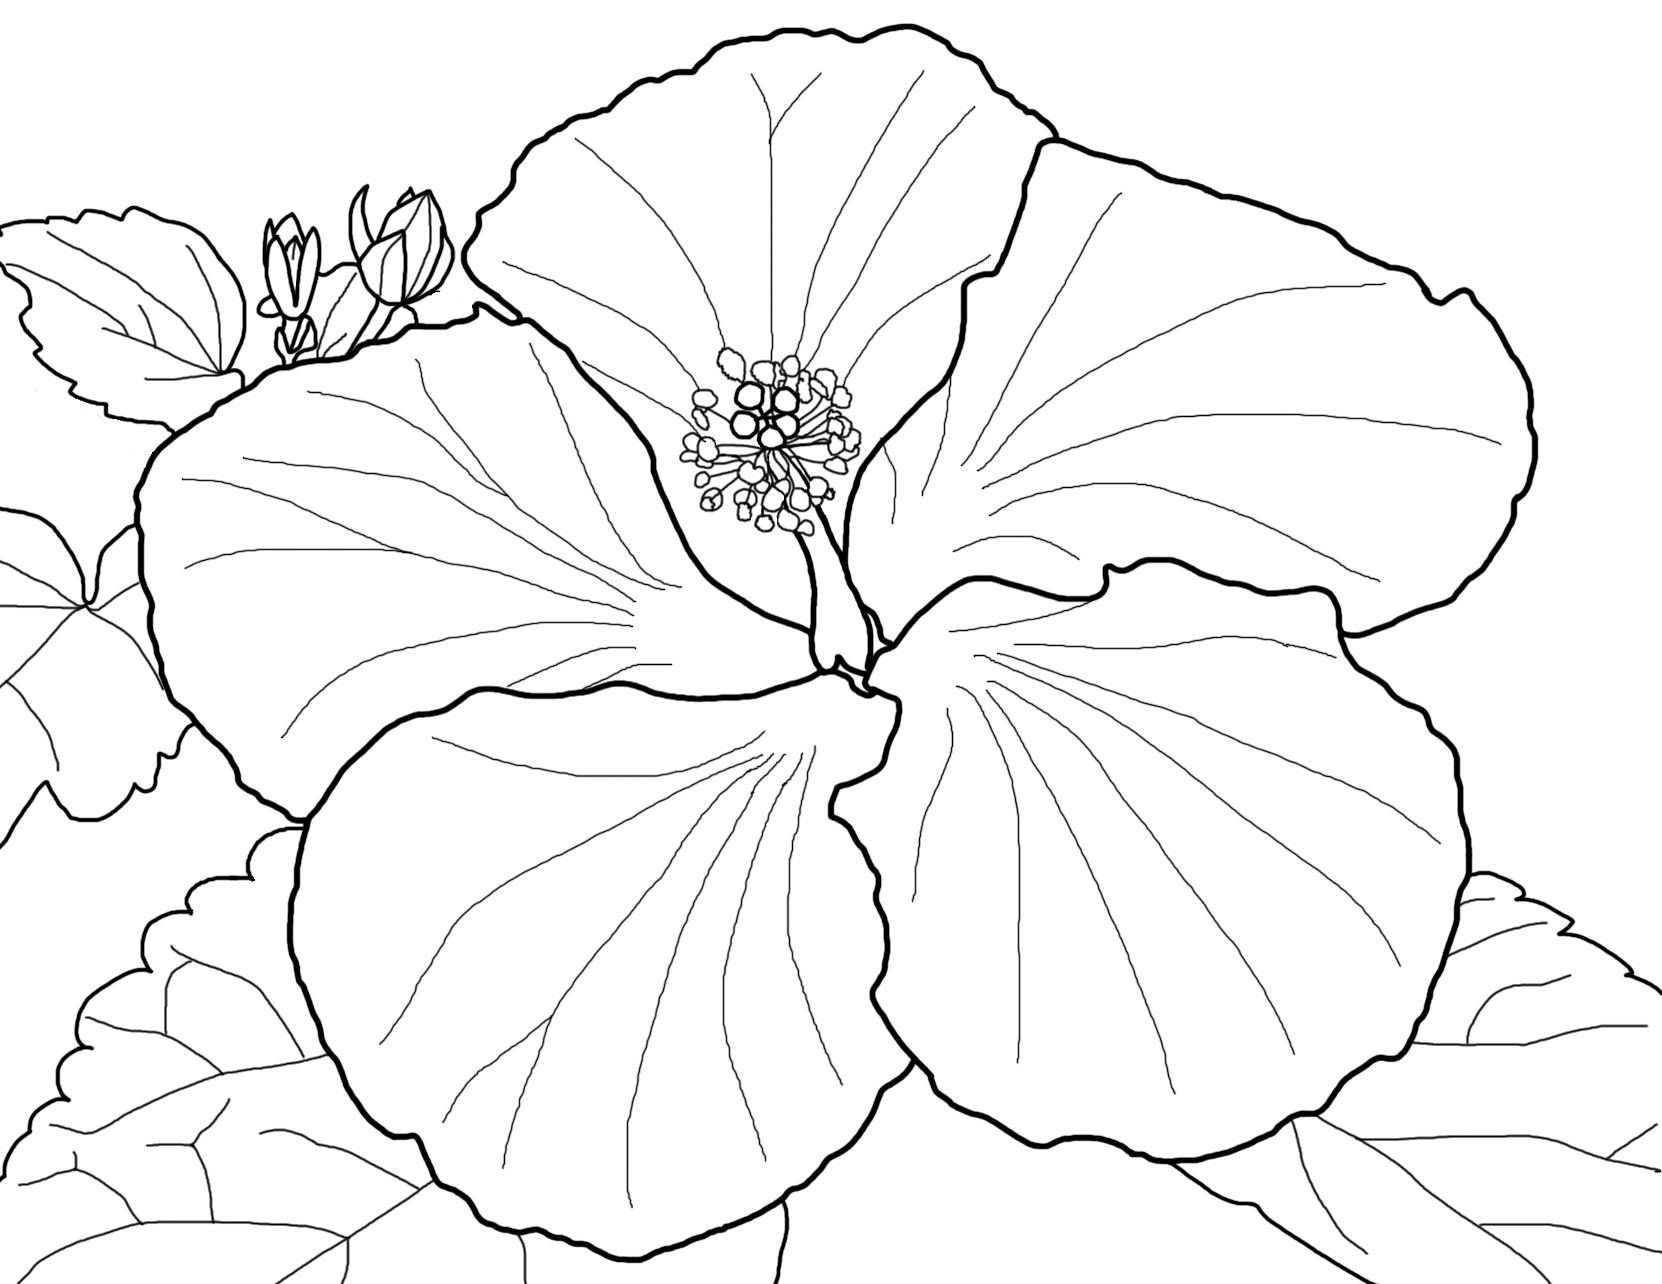 hibiscus coloring page free printable hibiscus coloring pages for kids hibiscus page coloring